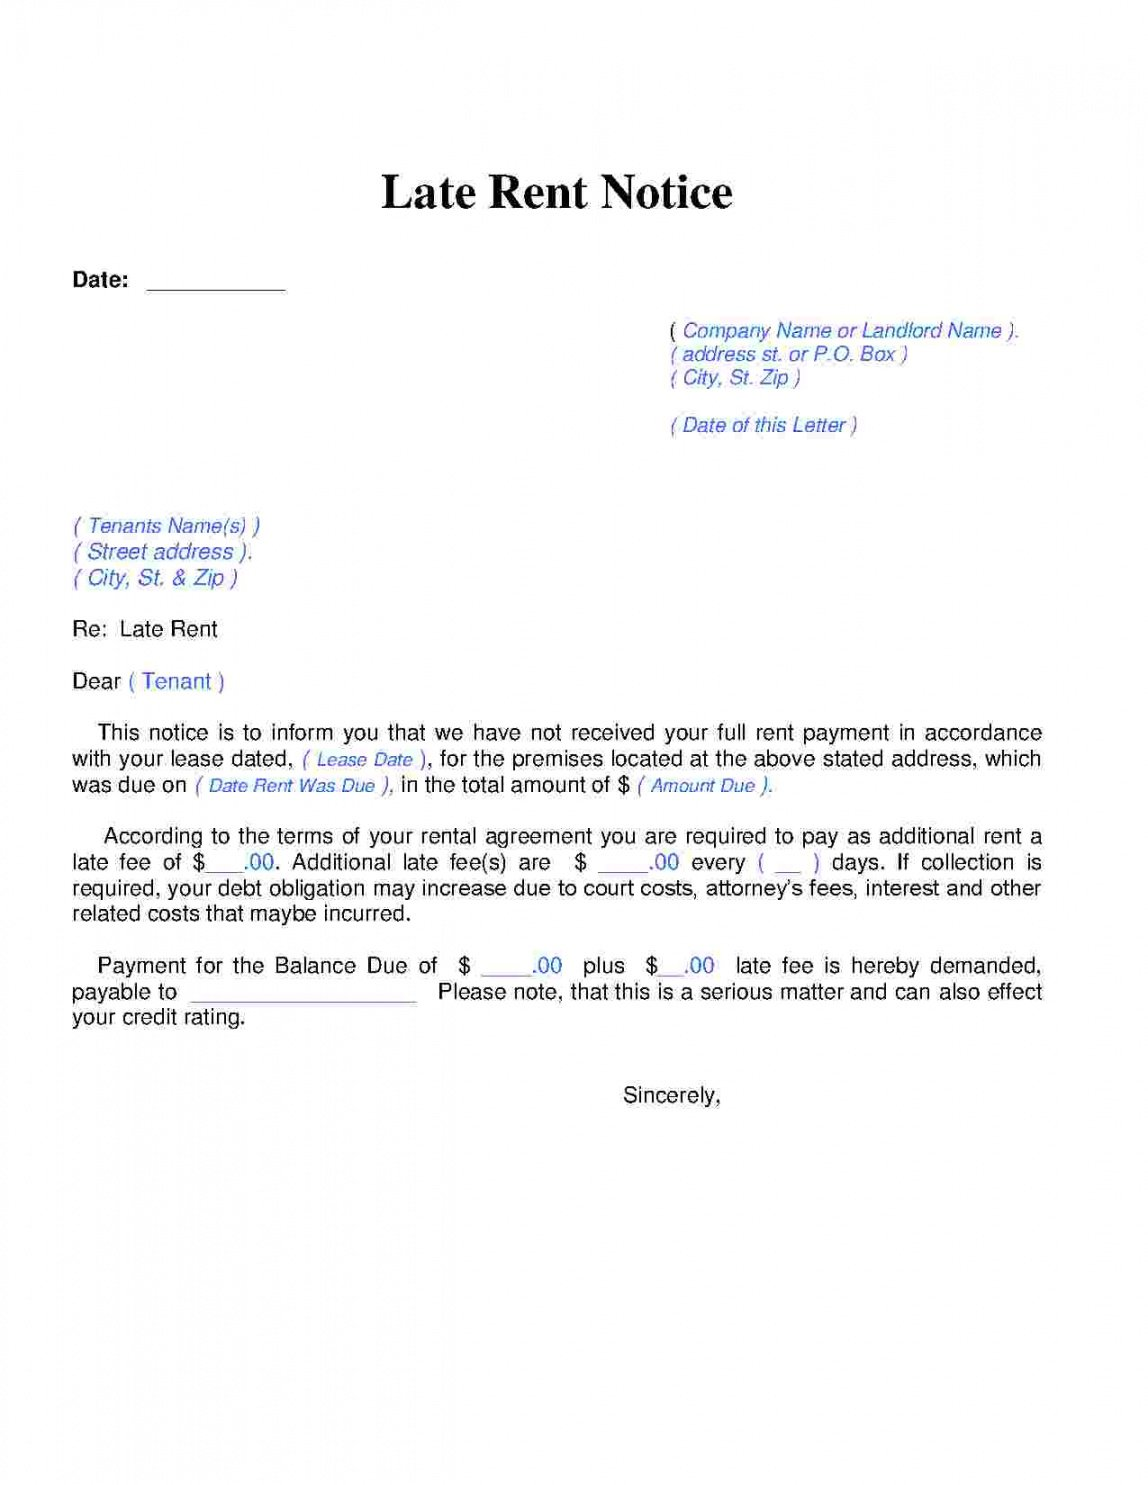 editable download late rent notice style 14 template for free at late notice for rent template sample